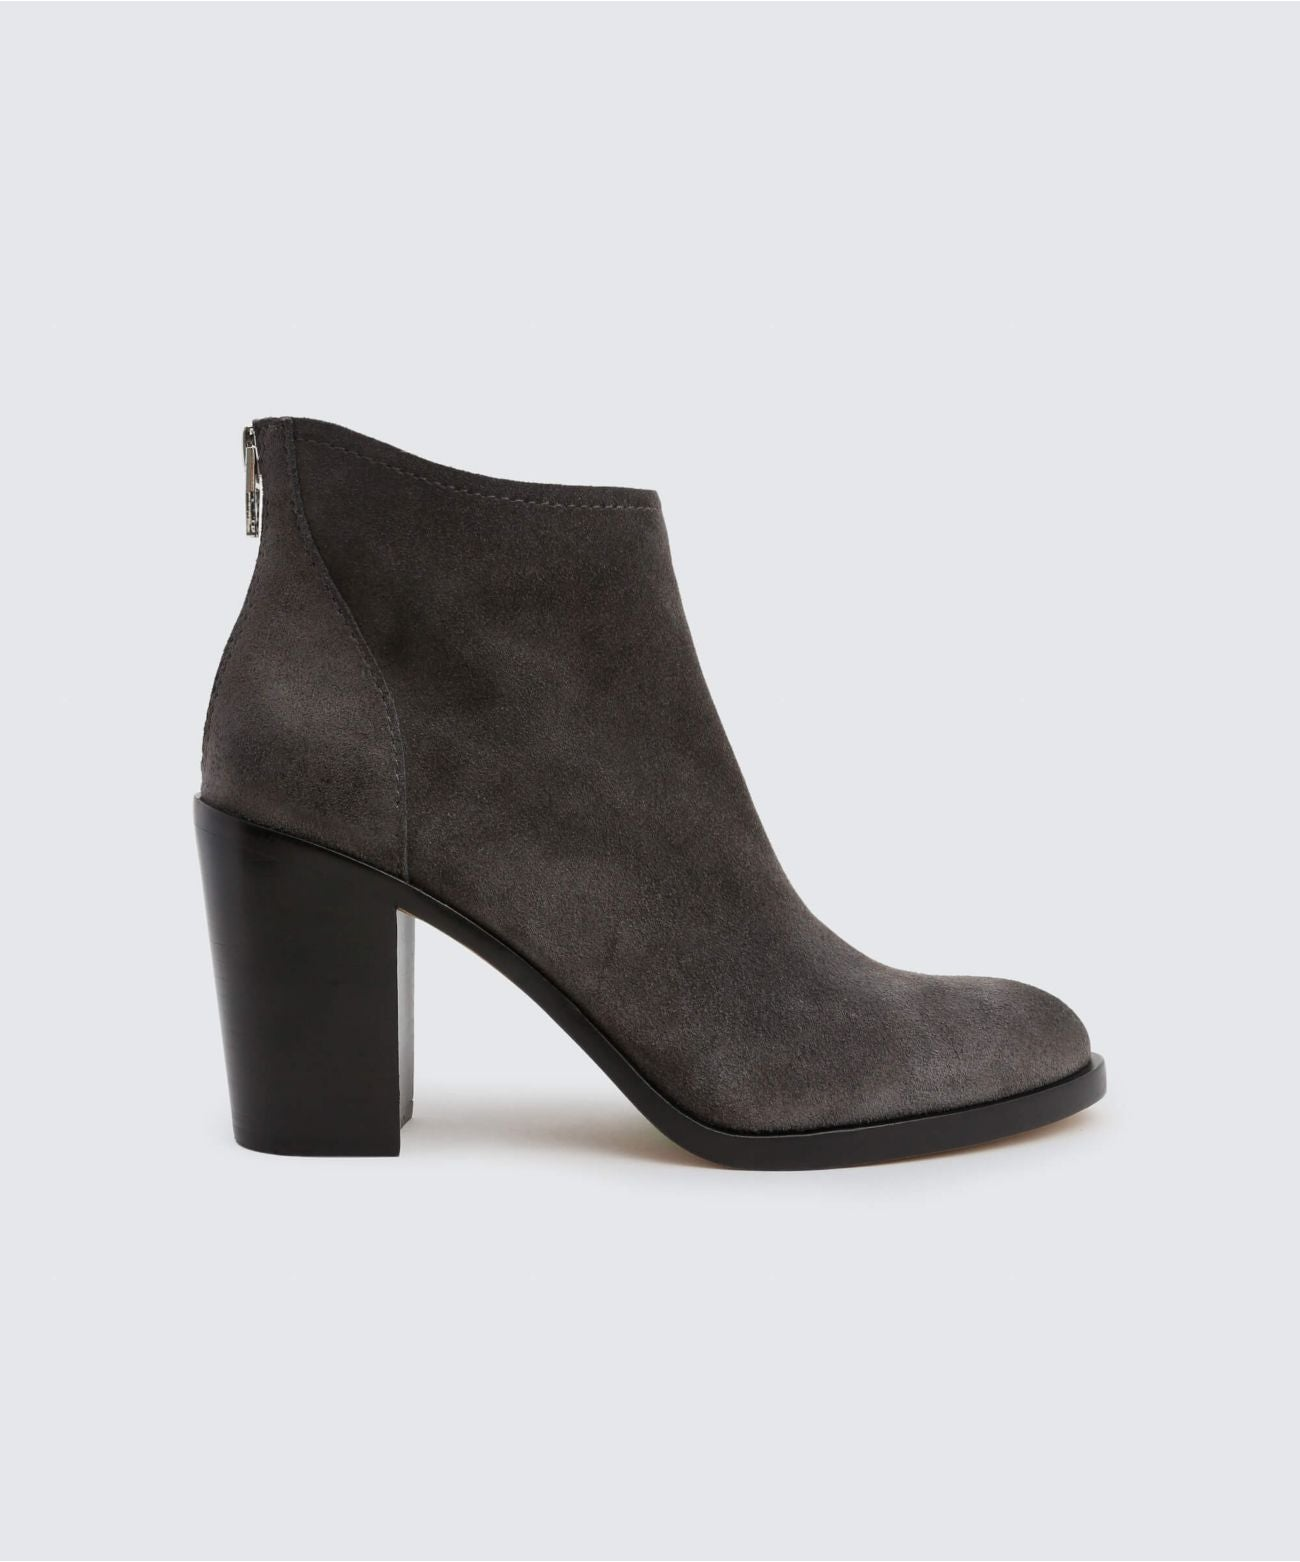 STEVIE BOOTIES ANTHRACITE – Dolce Vita 357d747d78f